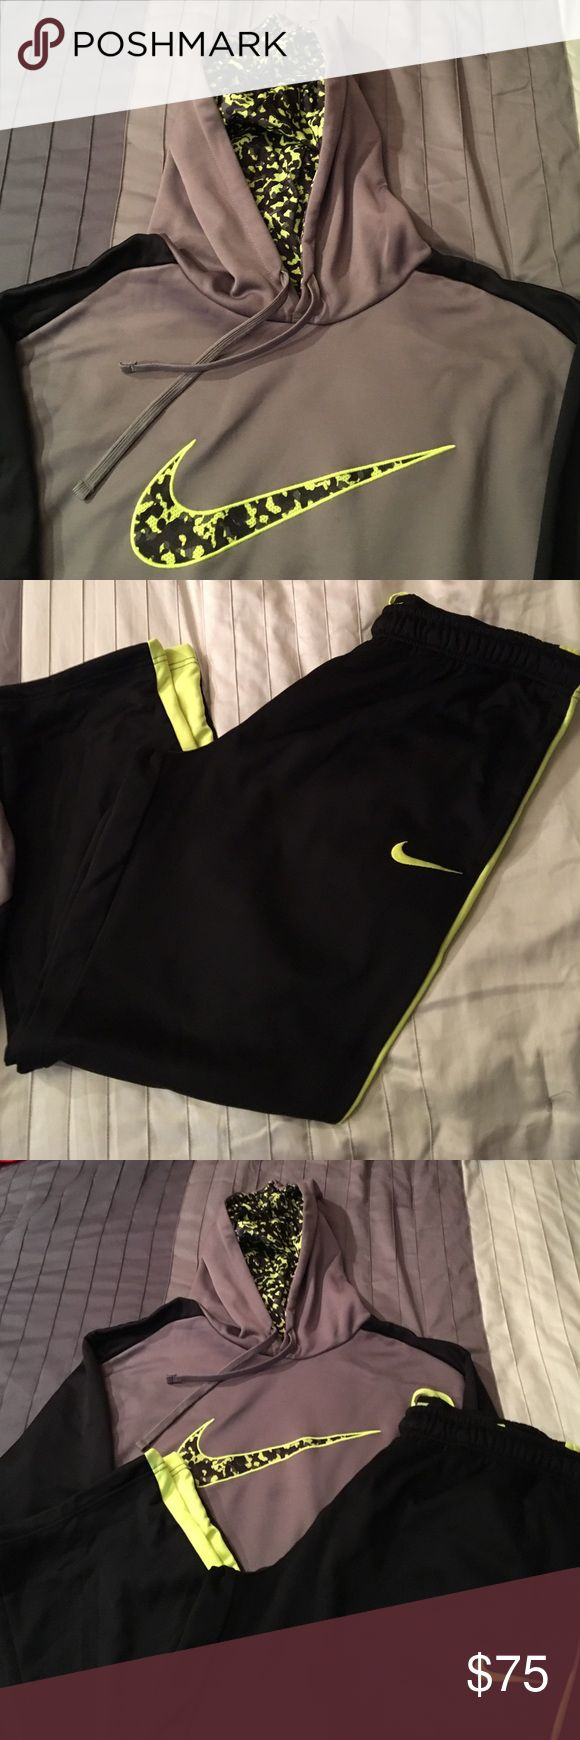 Men's Nike Sweatsuit Bundle Black, Grey, and Neon Green! XXL Men's hoodie and pants. Only wore once! Sold as a set Nike Other